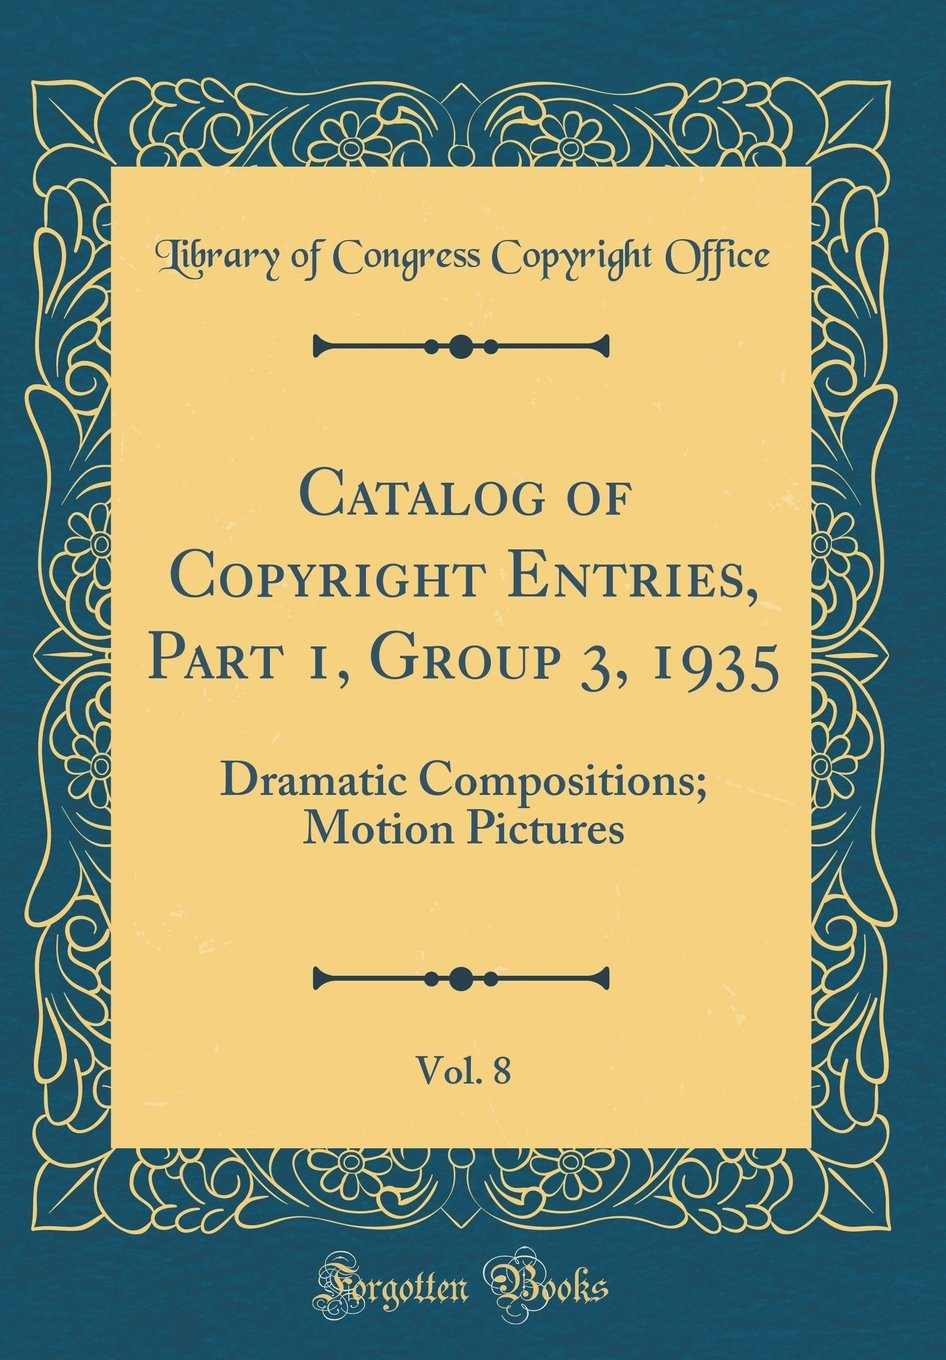 Catalog of Copyright Entries, Part 1, Group 3, 1935, Vol. 8: Dramatic Compositions; Motion Pictures (Classic Reprint) pdf epub